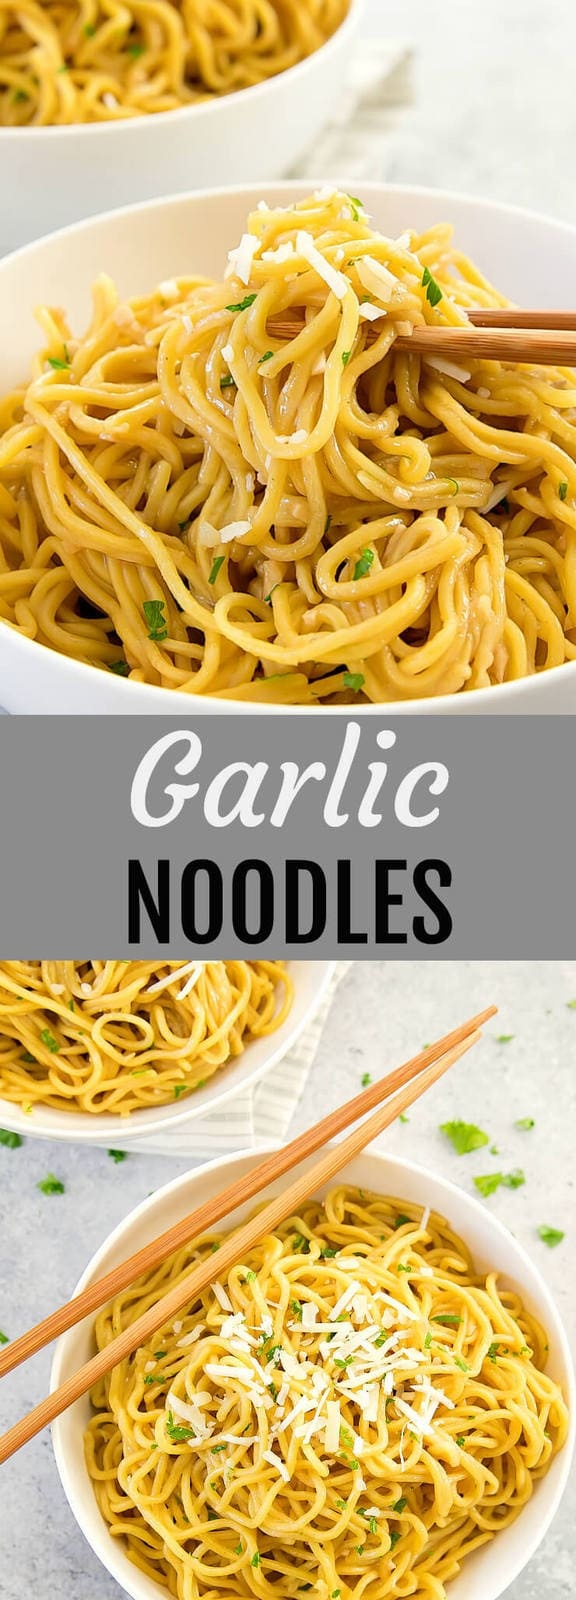 Garlic Noodles. Asian-style garlic butter noodles. Easy and ready in less than 30 minutes.